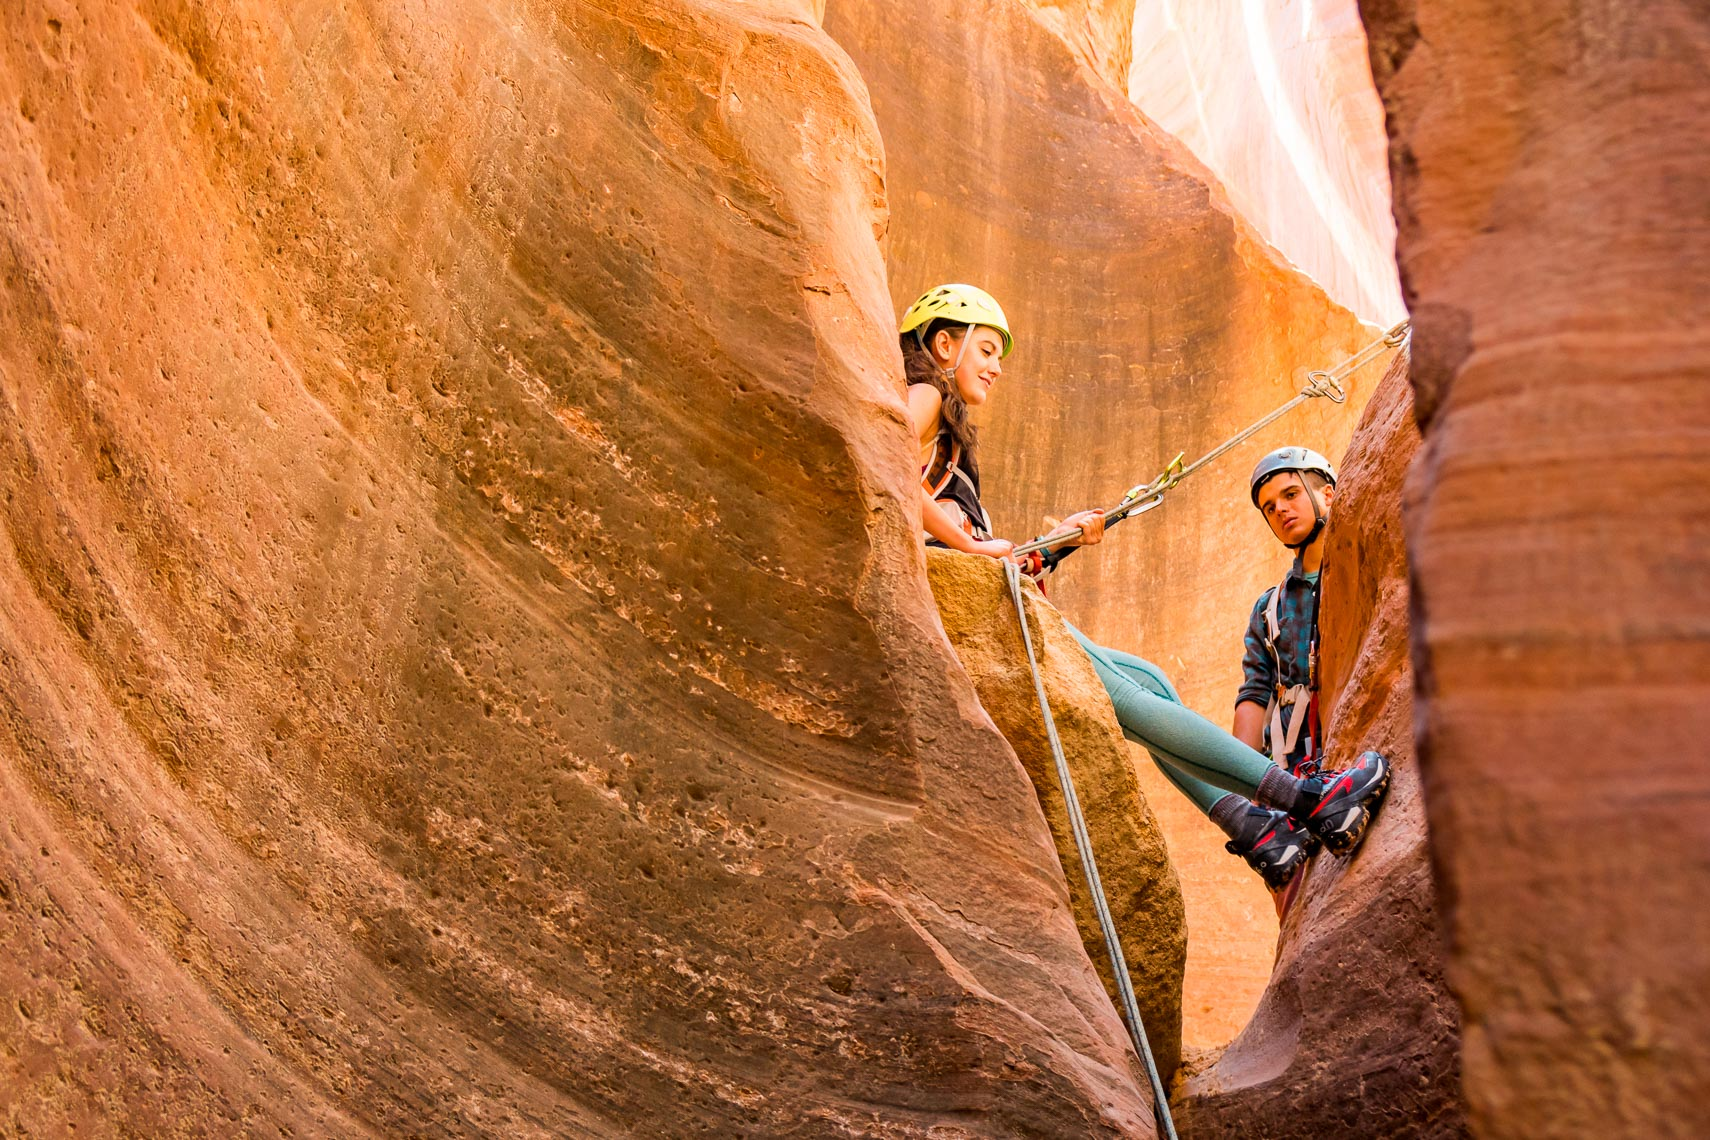 Zion National Park Canyoneering | Photographer Michael DeYoung